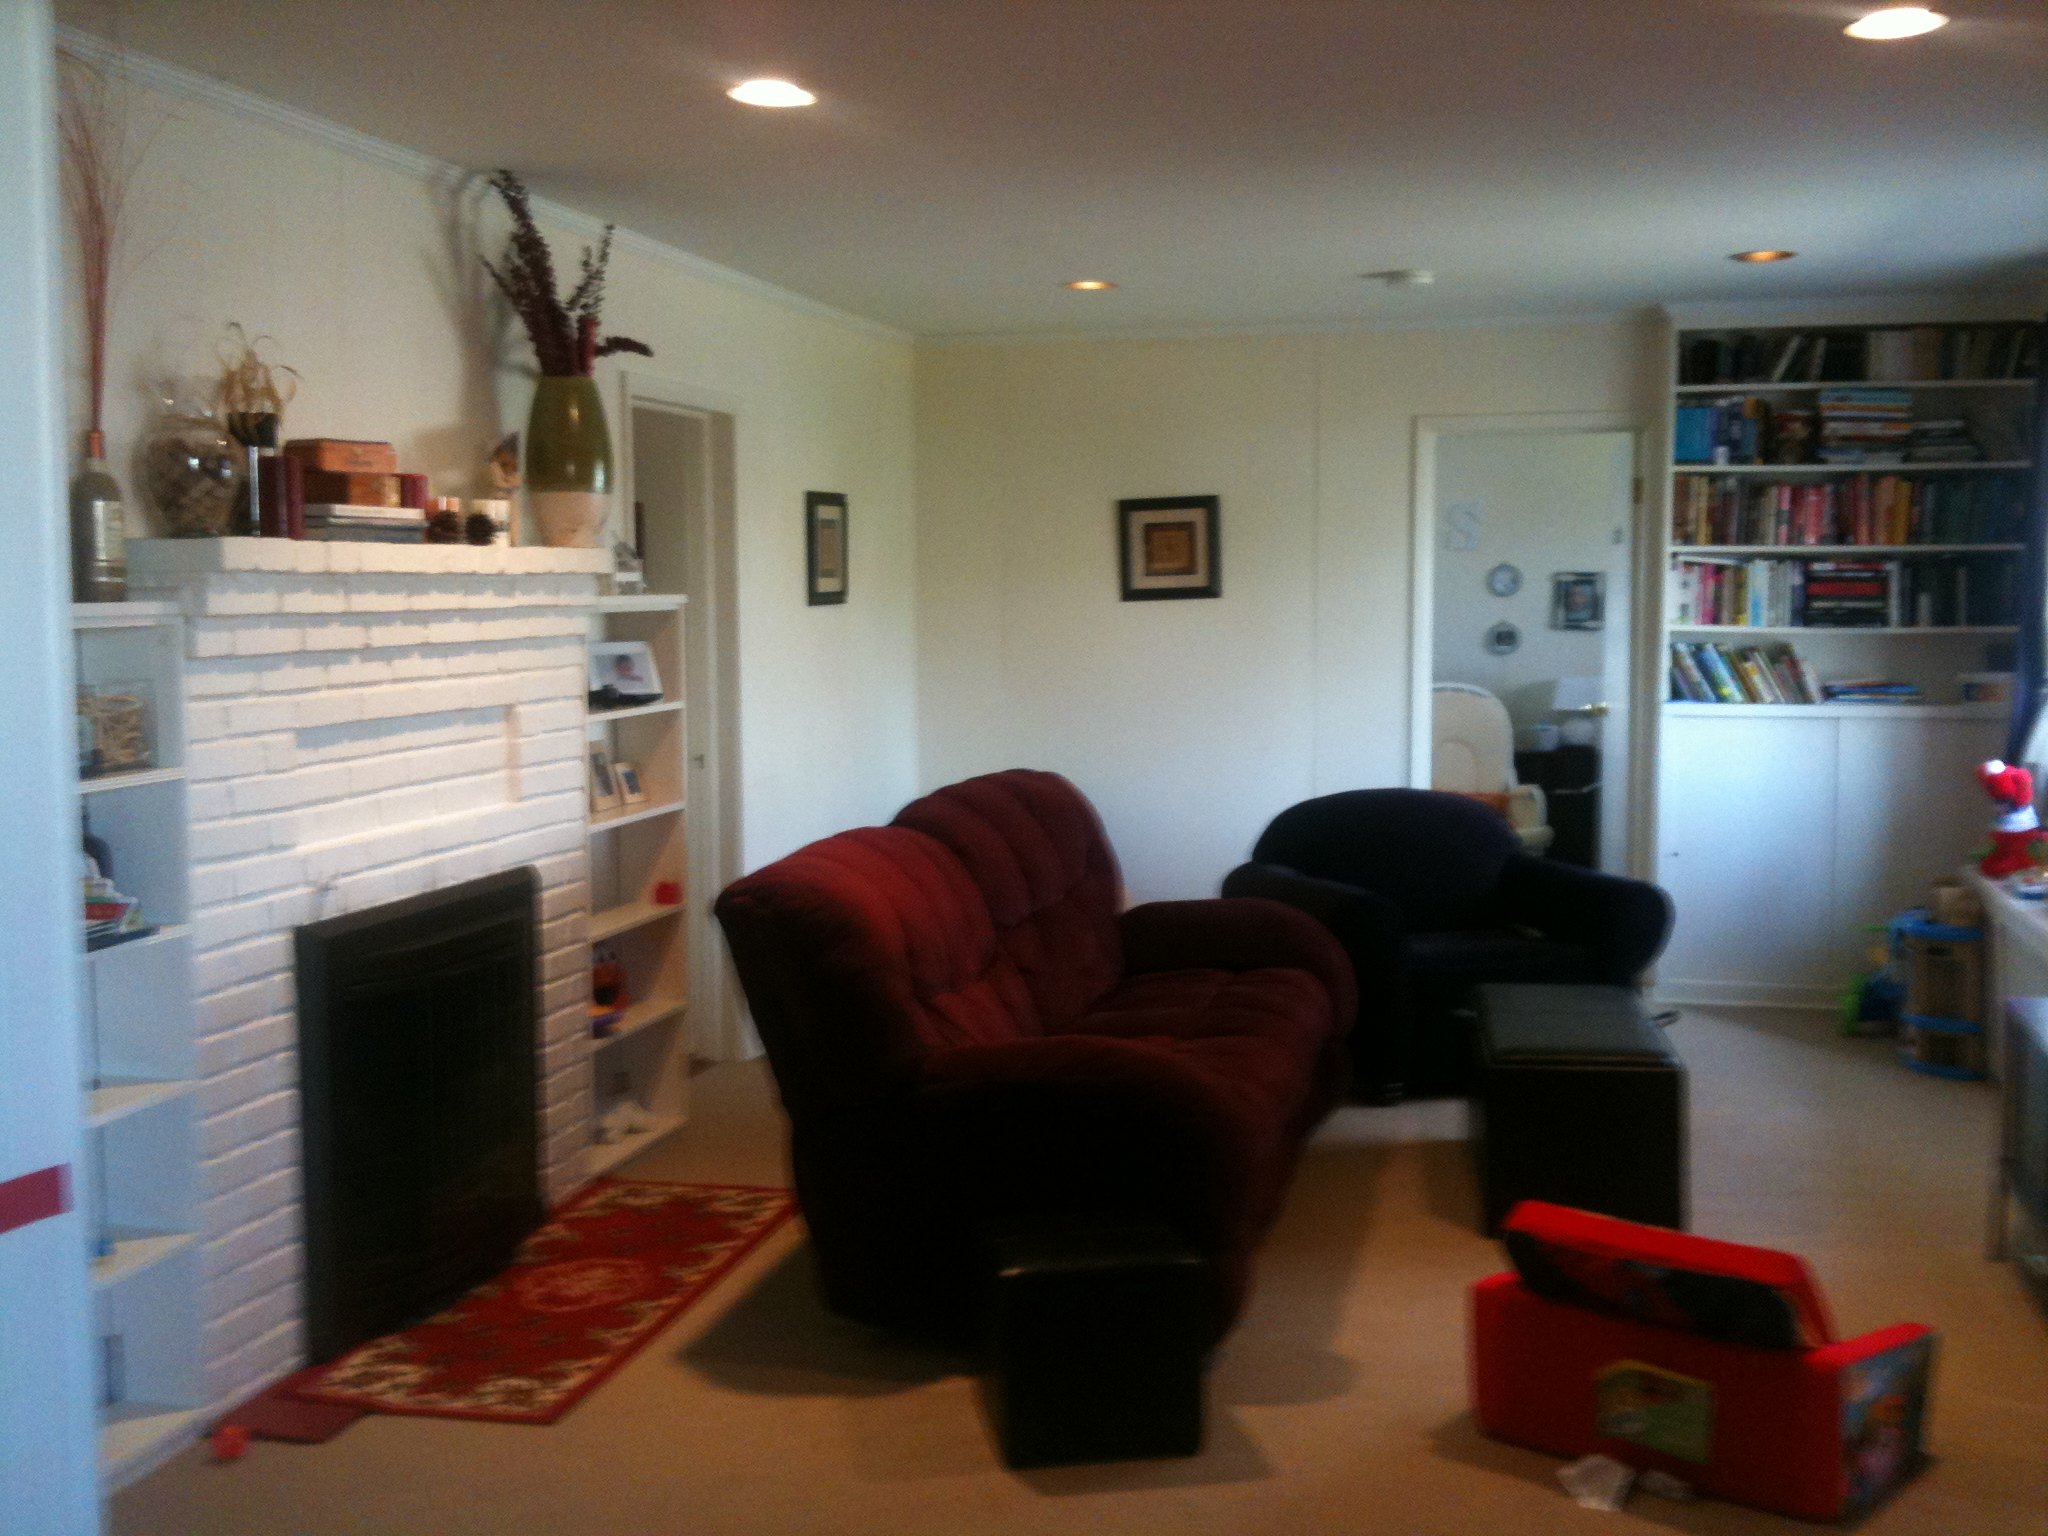 How To Arrange My Living Room Fair How Would You Arrange My Living Room Pics Flooring Fireplace . Decorating Inspiration